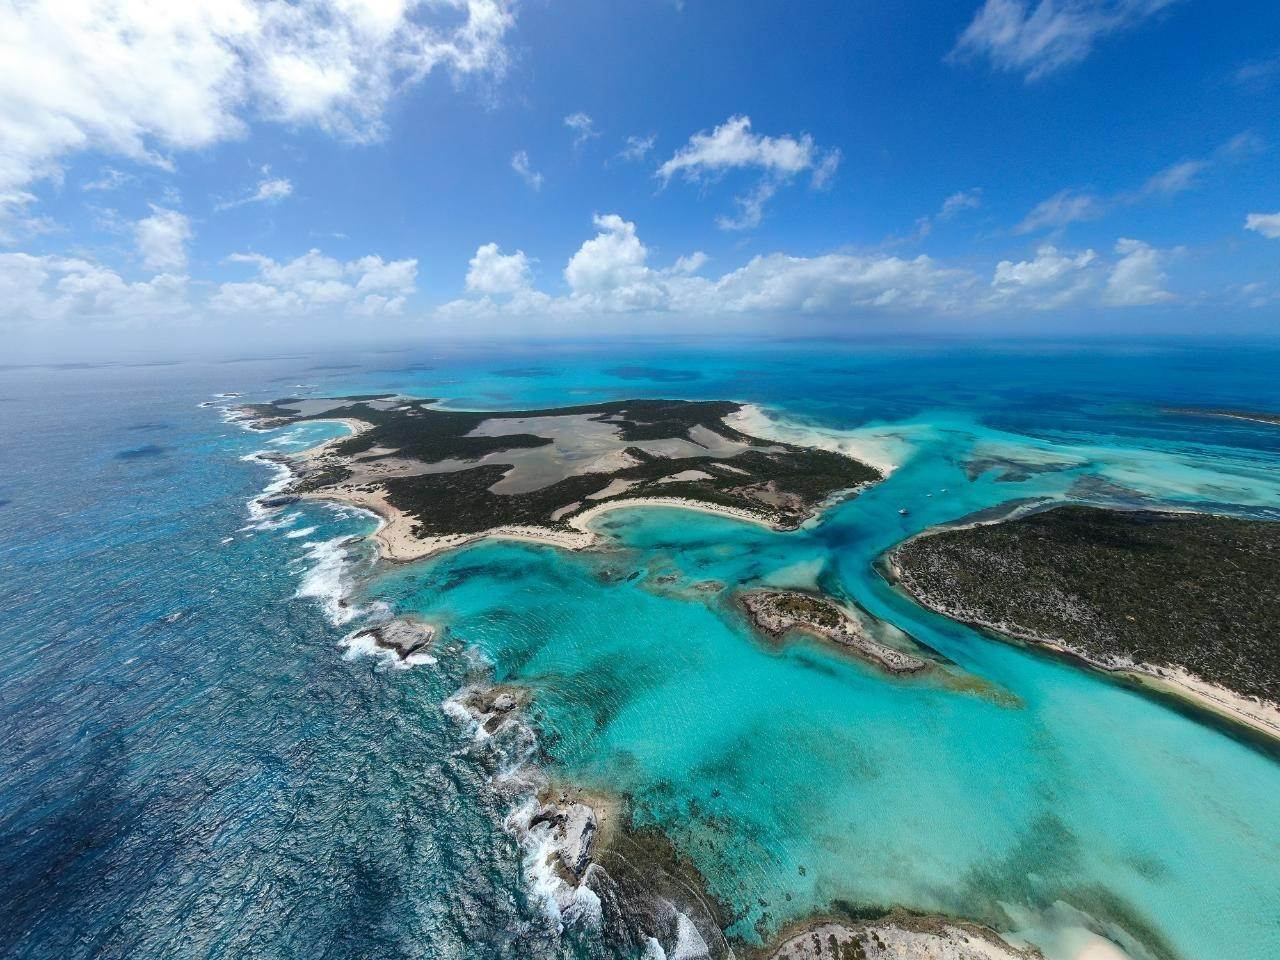 Property for Sale at Ragged Island, Bahamas